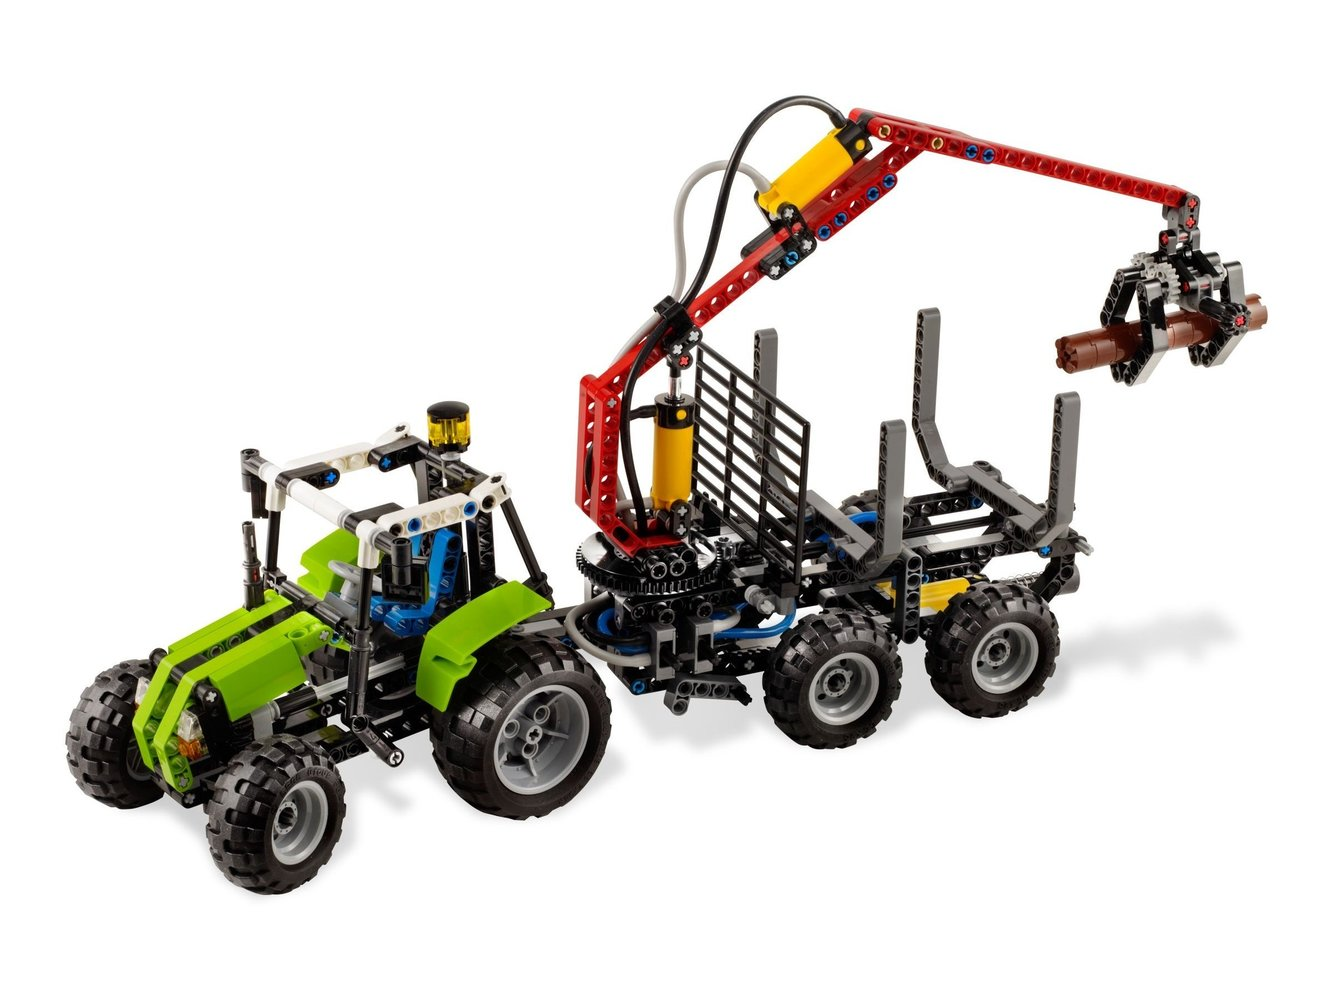 Tractor with Log Loader